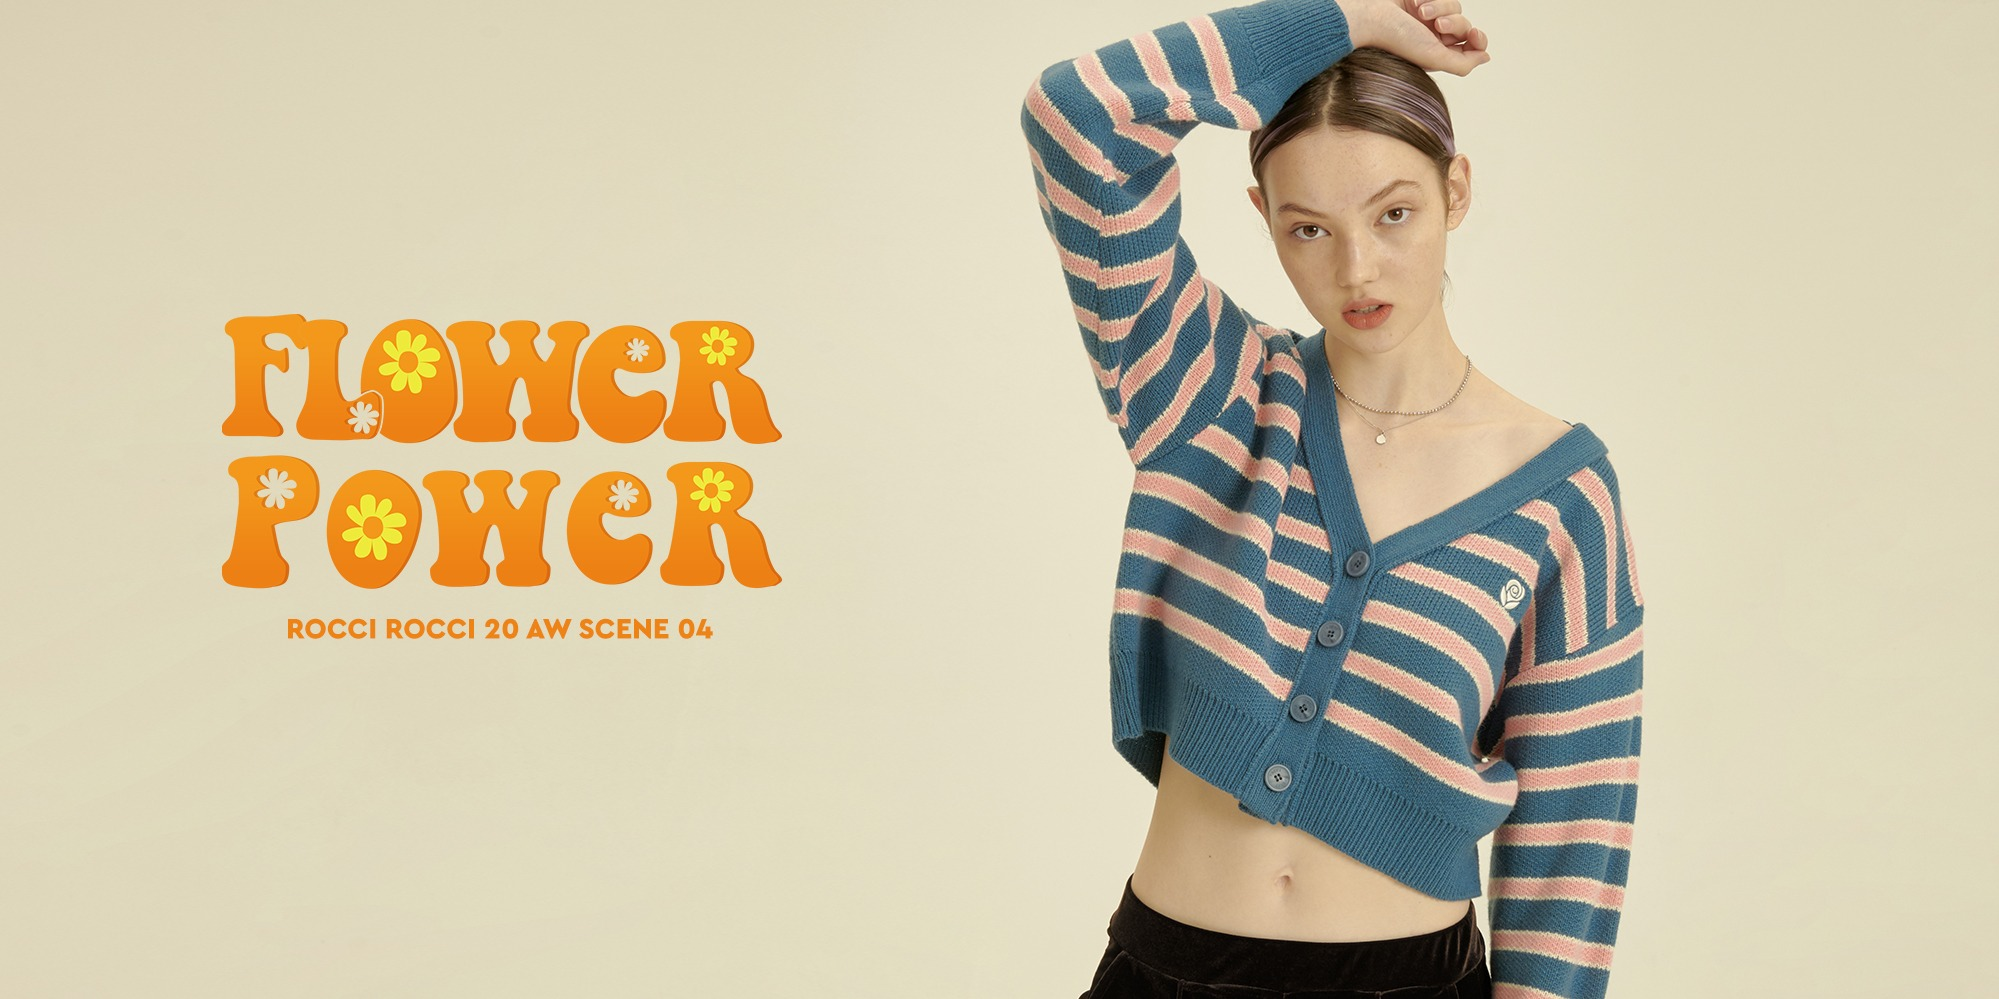 20 AW COLLECTION. FLOWER POWER #SCENE 0420 AW COLLECTION. FLOWER POWER #SCENE 04자체브랜드